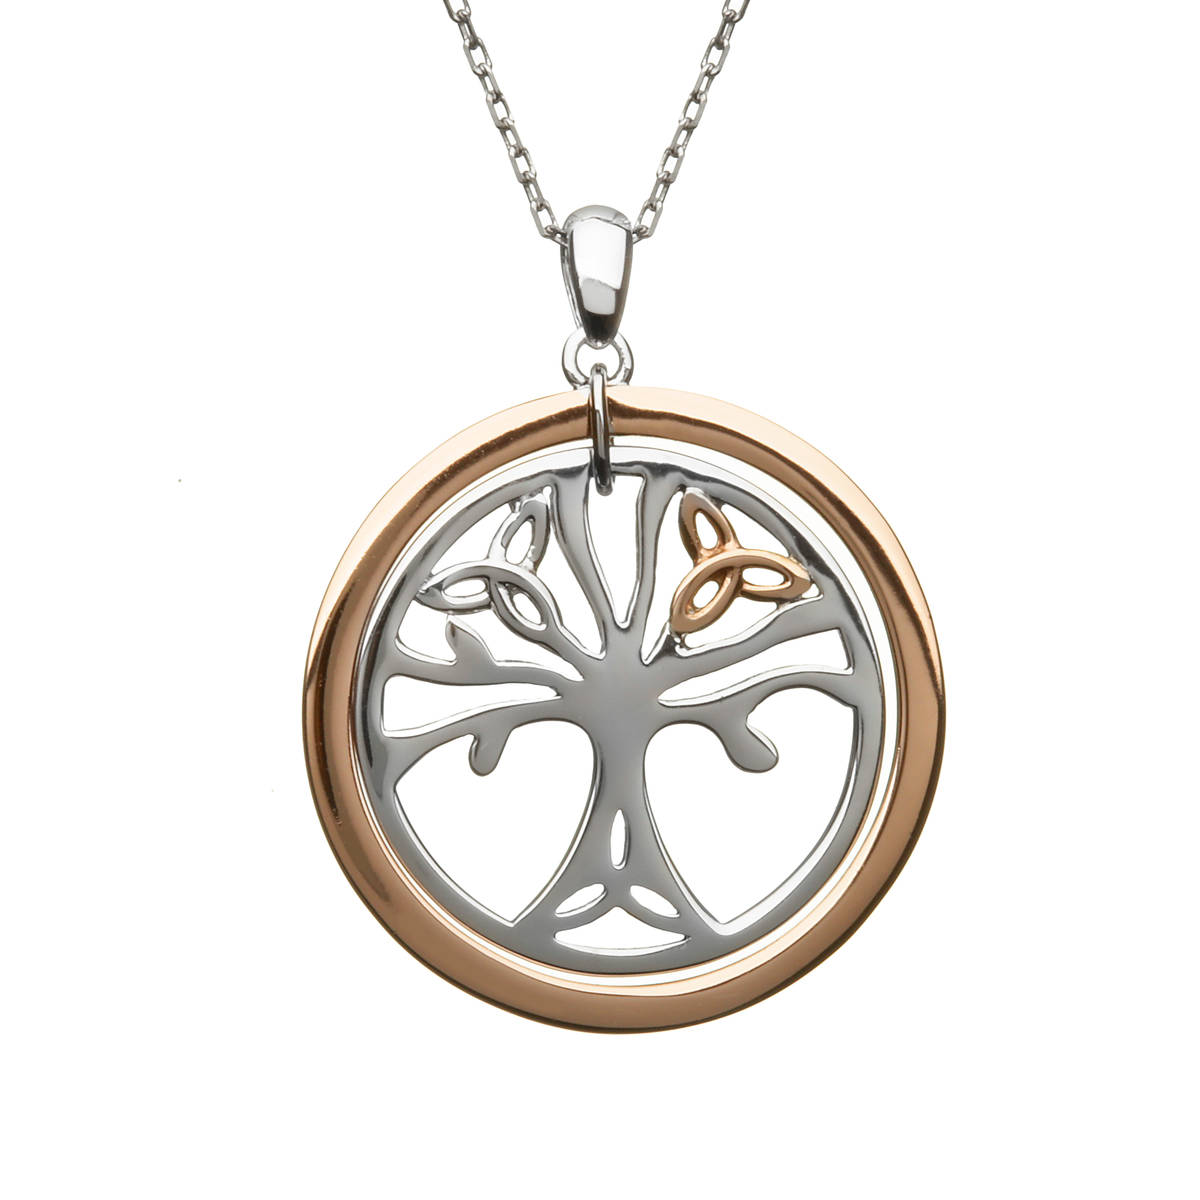 House of Lor silver/rose Tree of Life pendant made from rare Irish gold